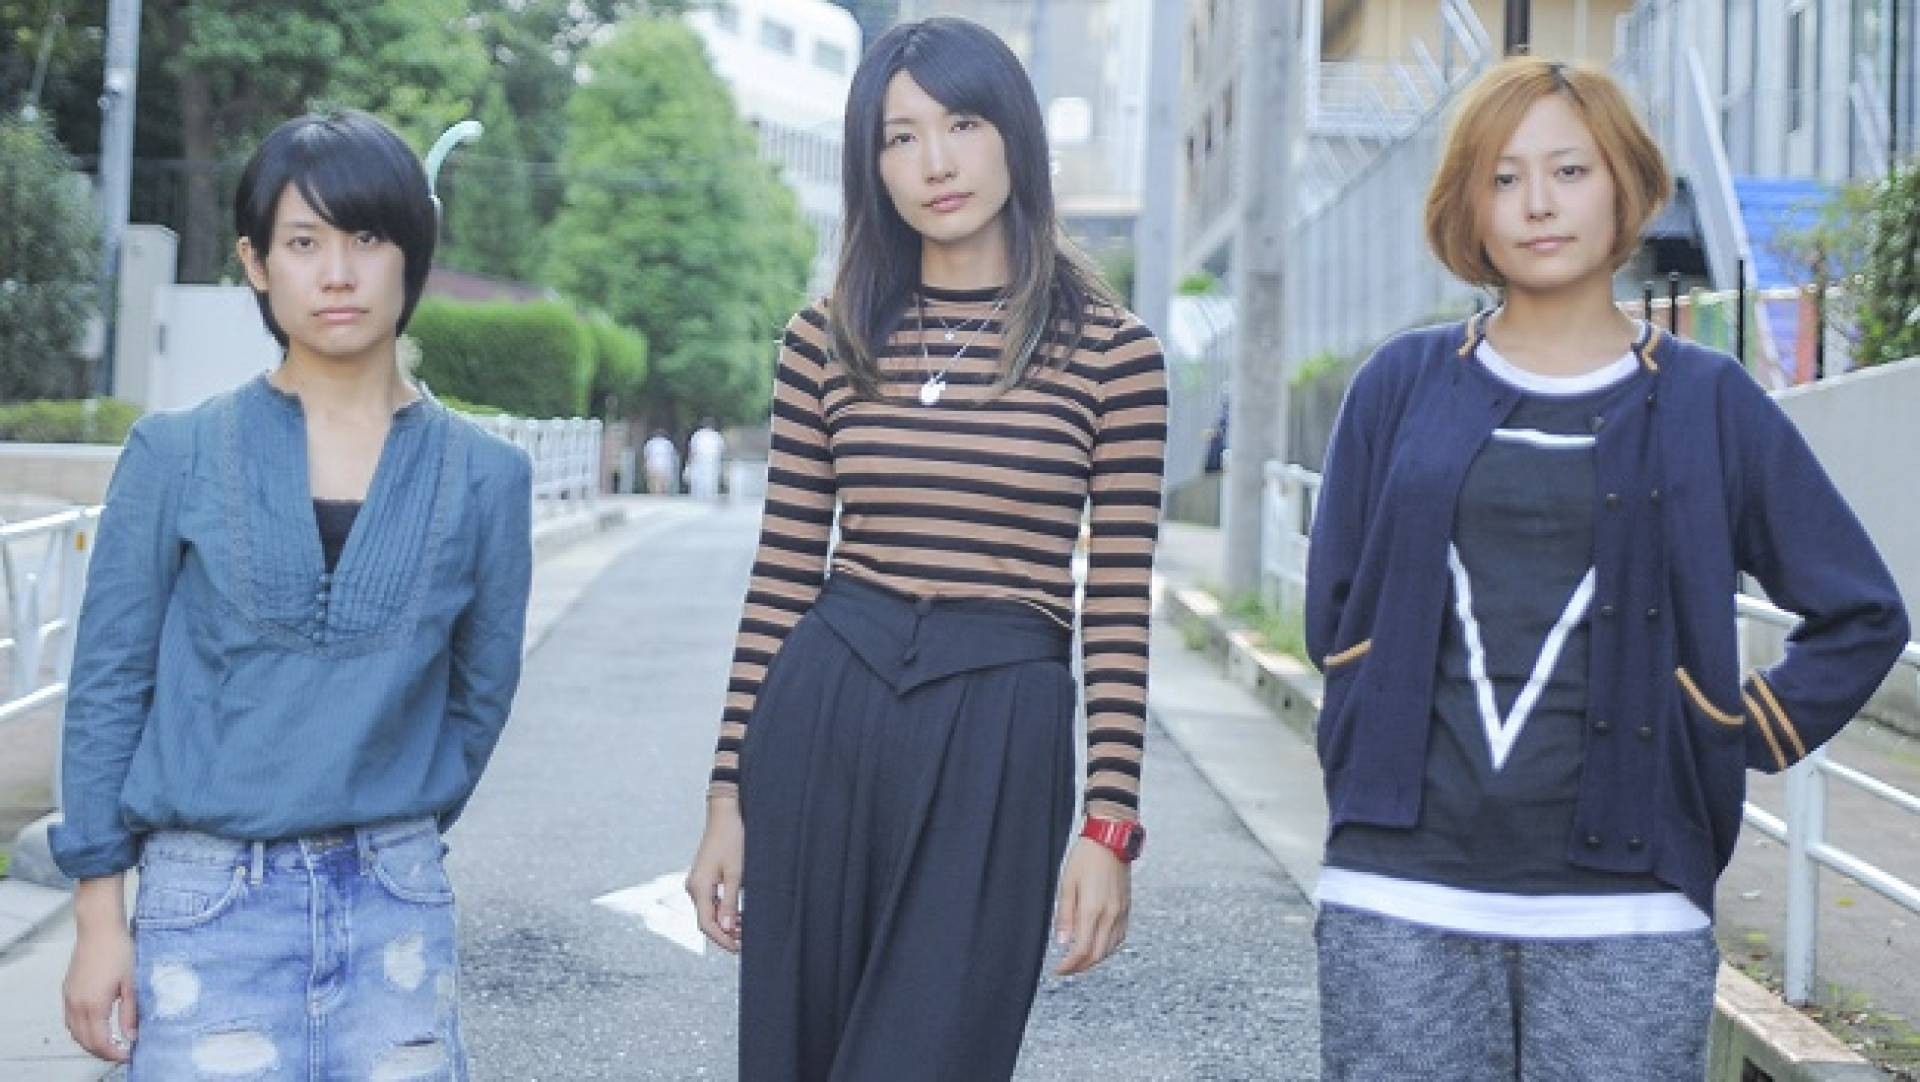 Tricot the band apart